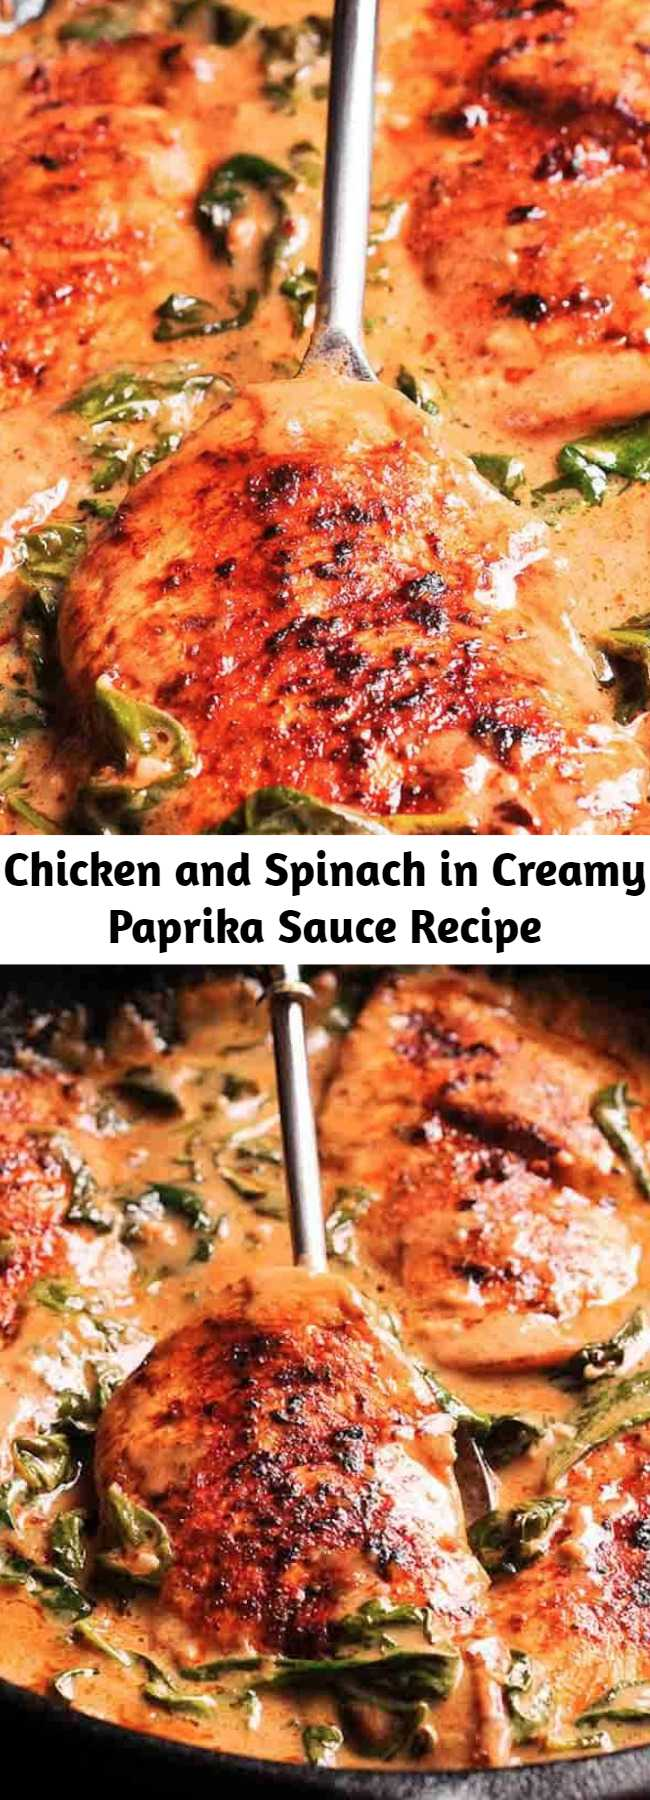 Chicken and Spinach in Creamy Paprika Sauce Recipe - Chicken and Spinach in Creamy Paprika Sauce is an amazing one-pan dish with an amazing flavor from white wine and mild tang from the fresh lemon juice.